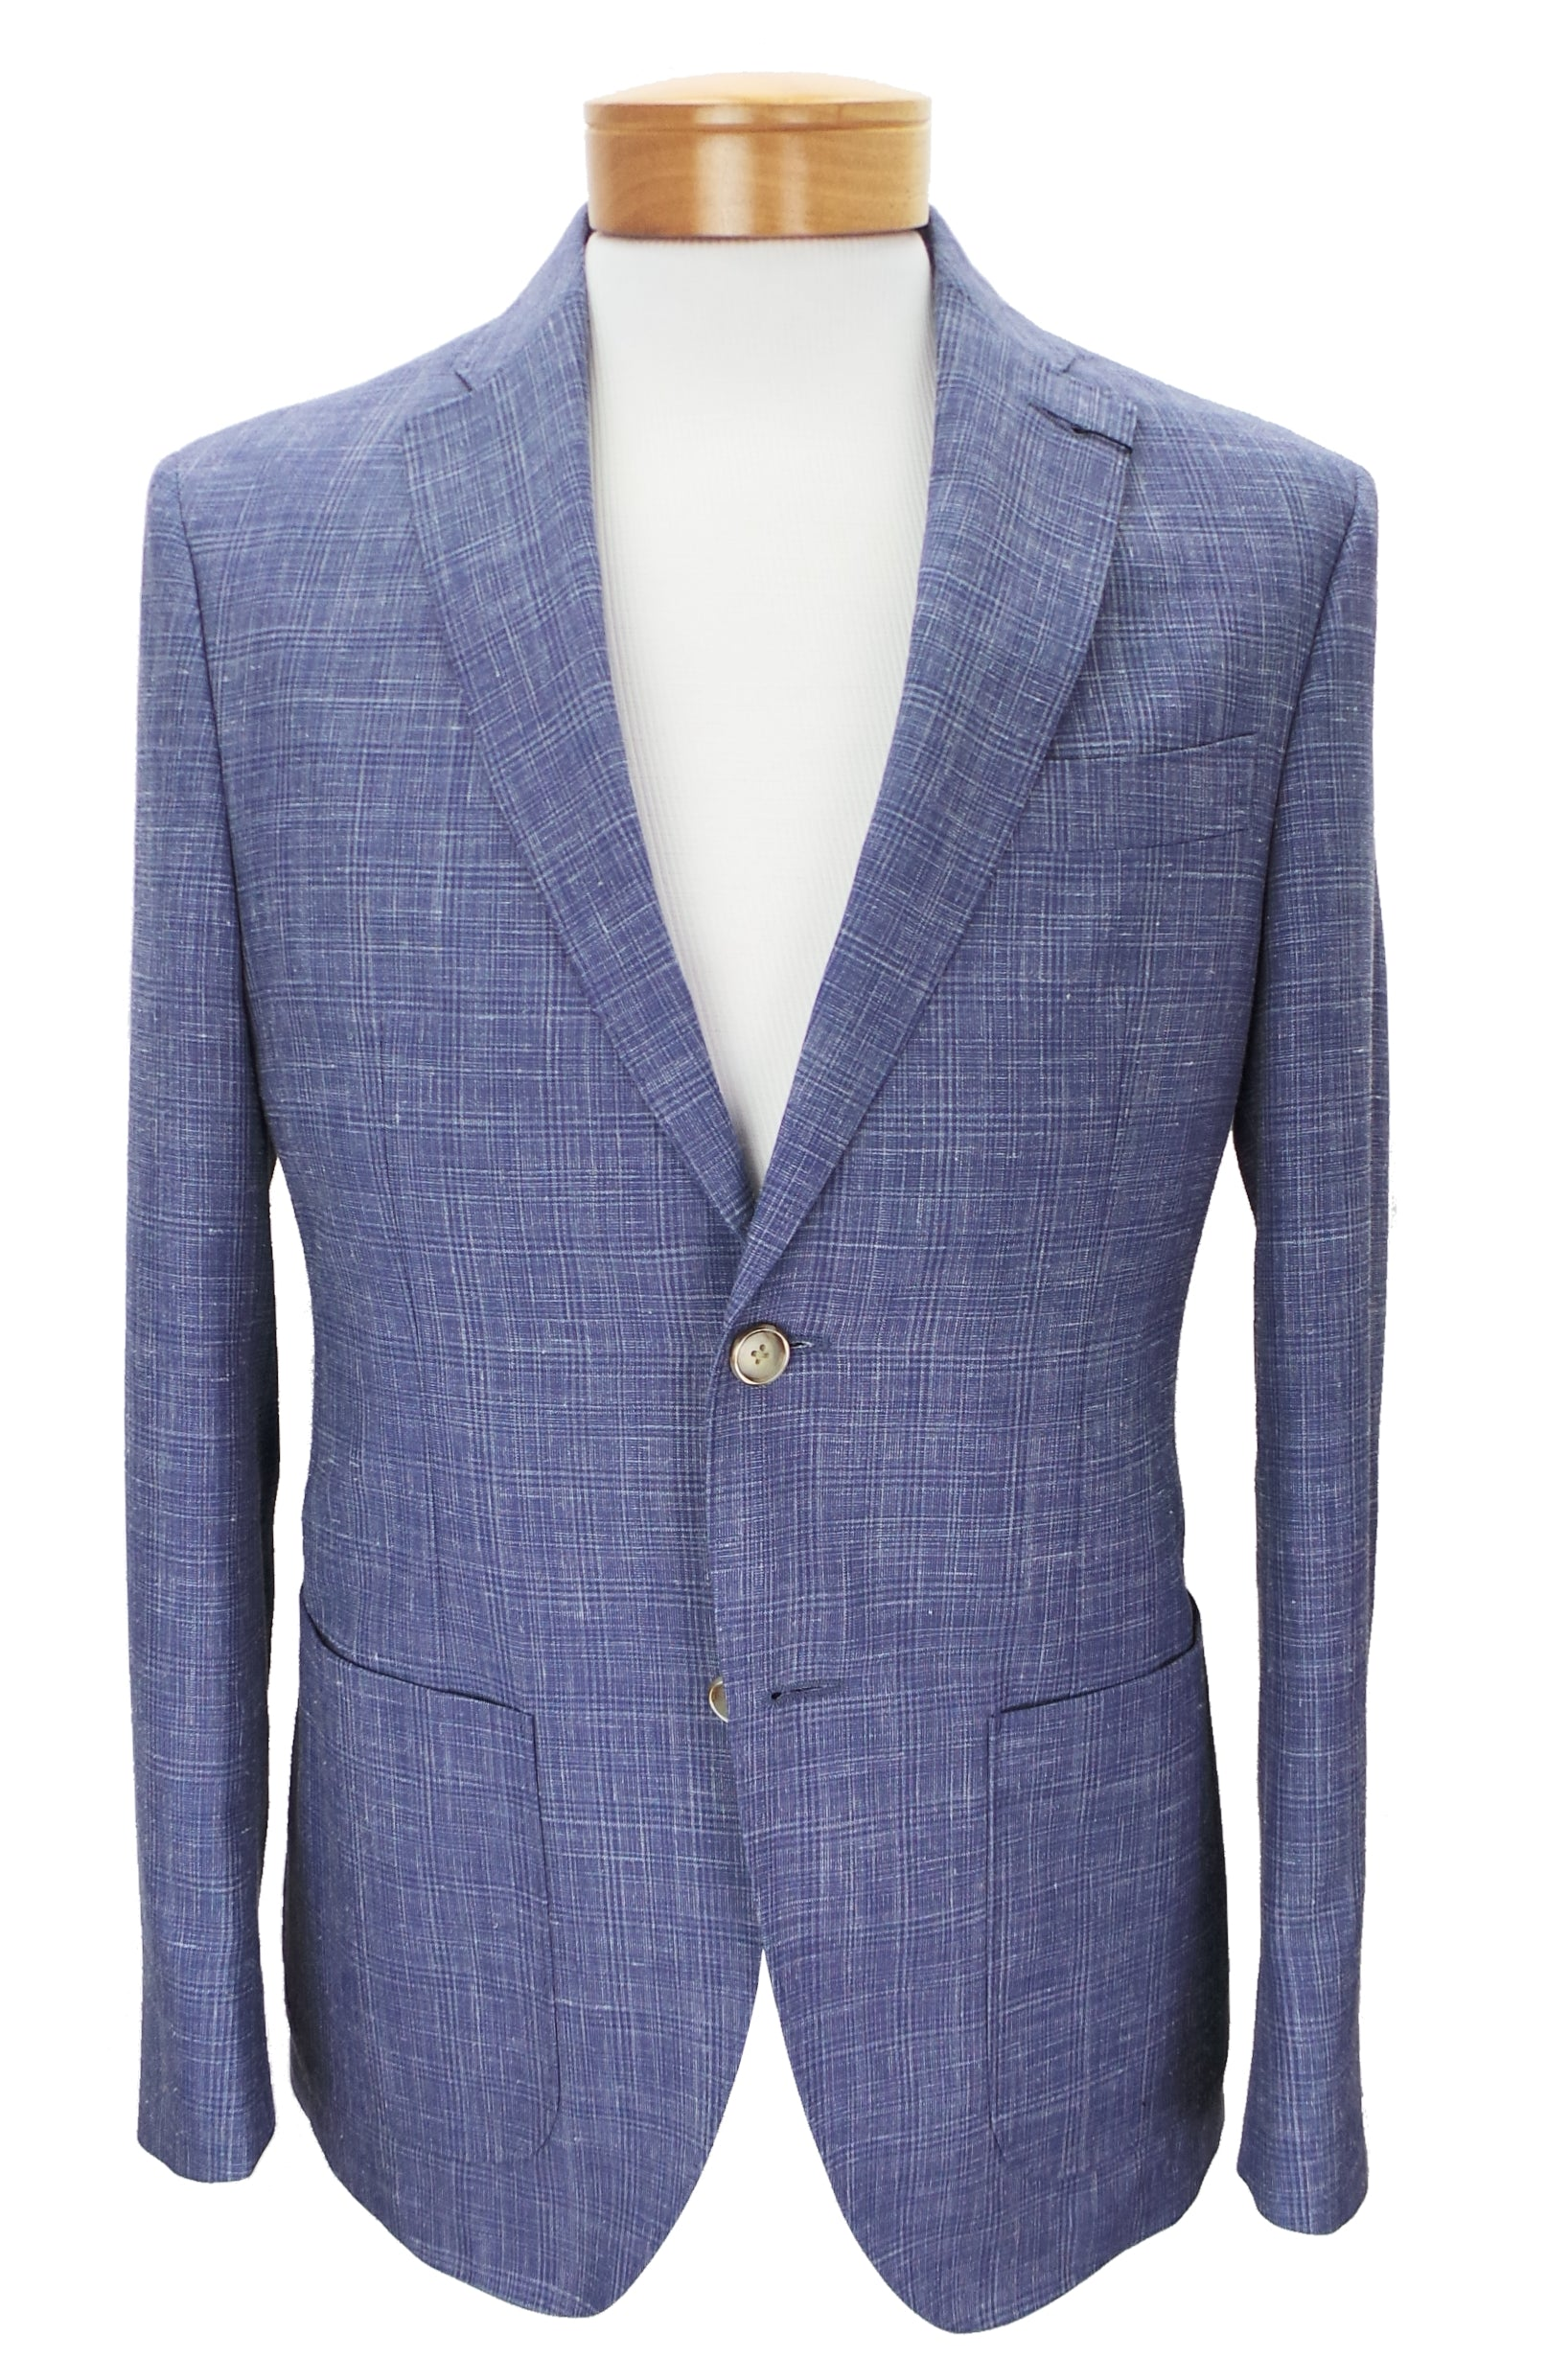 JKT New York Trent Subtle Plaid Wool Linen Blend Blazer